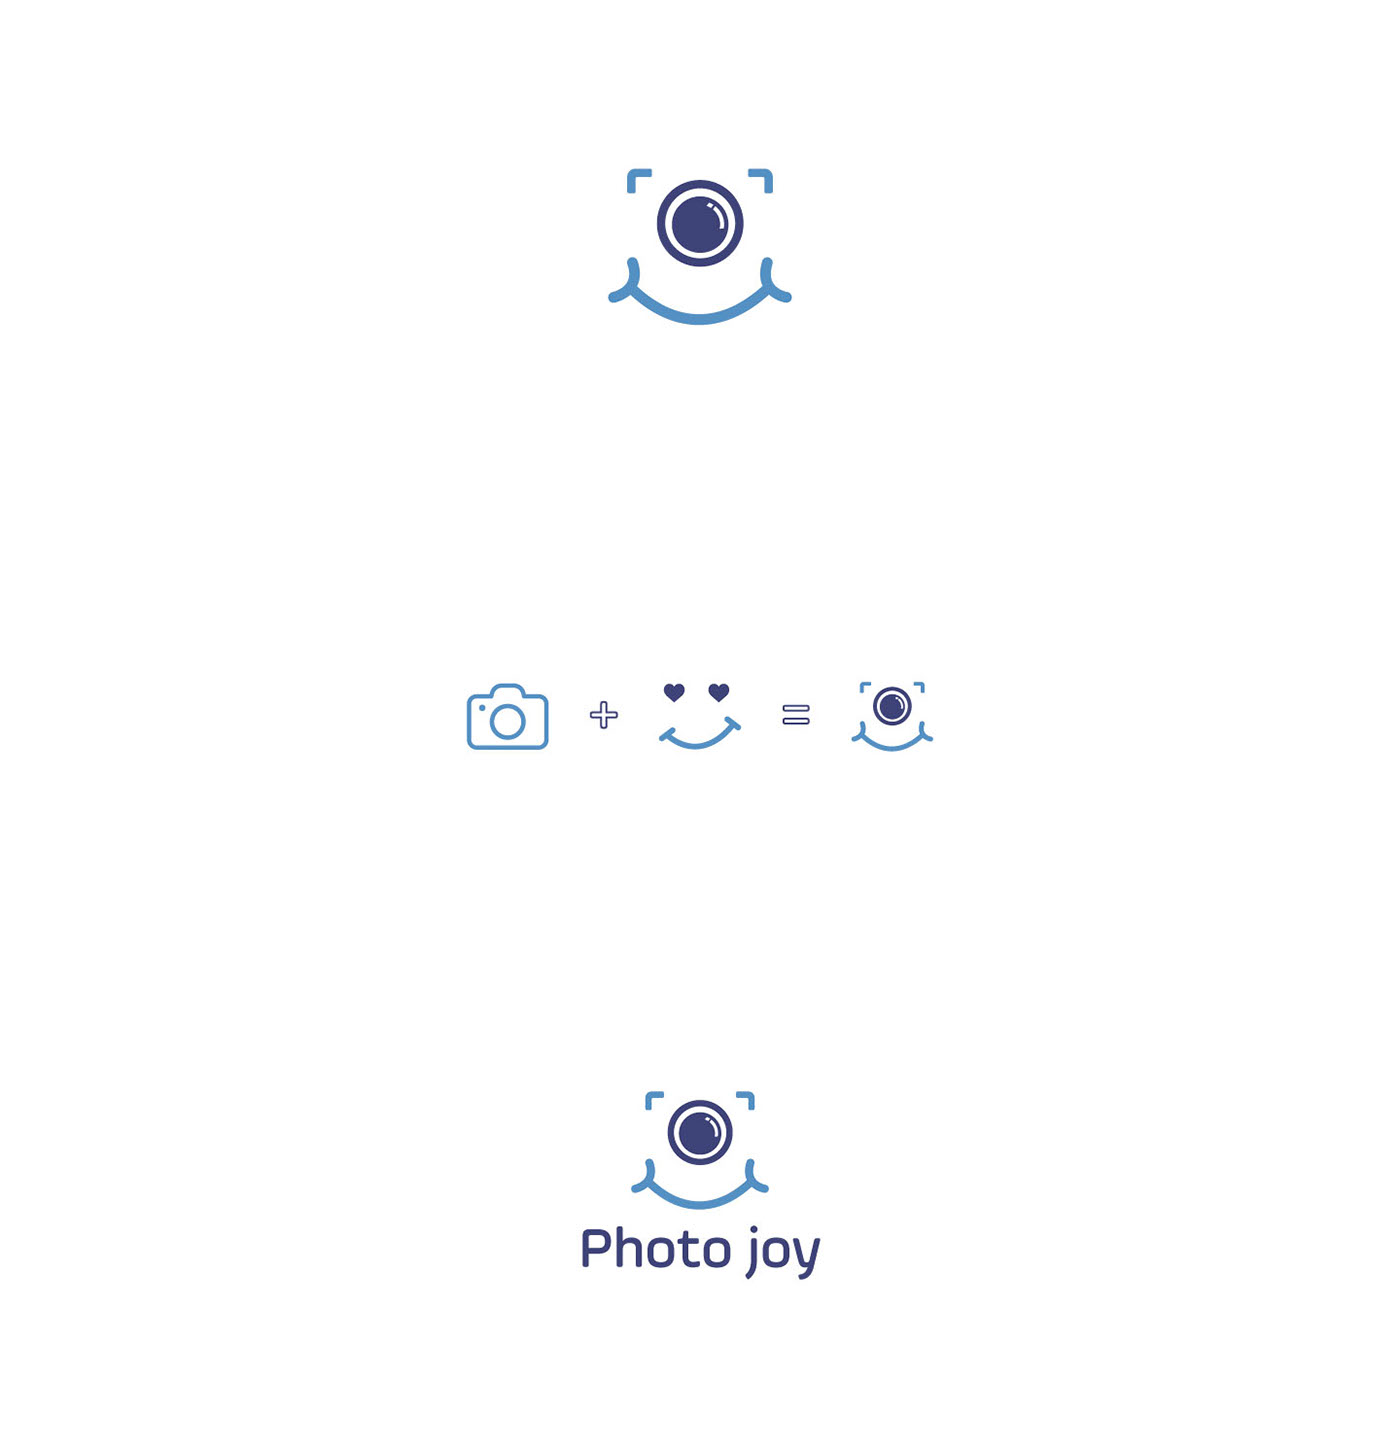 photo joy logo